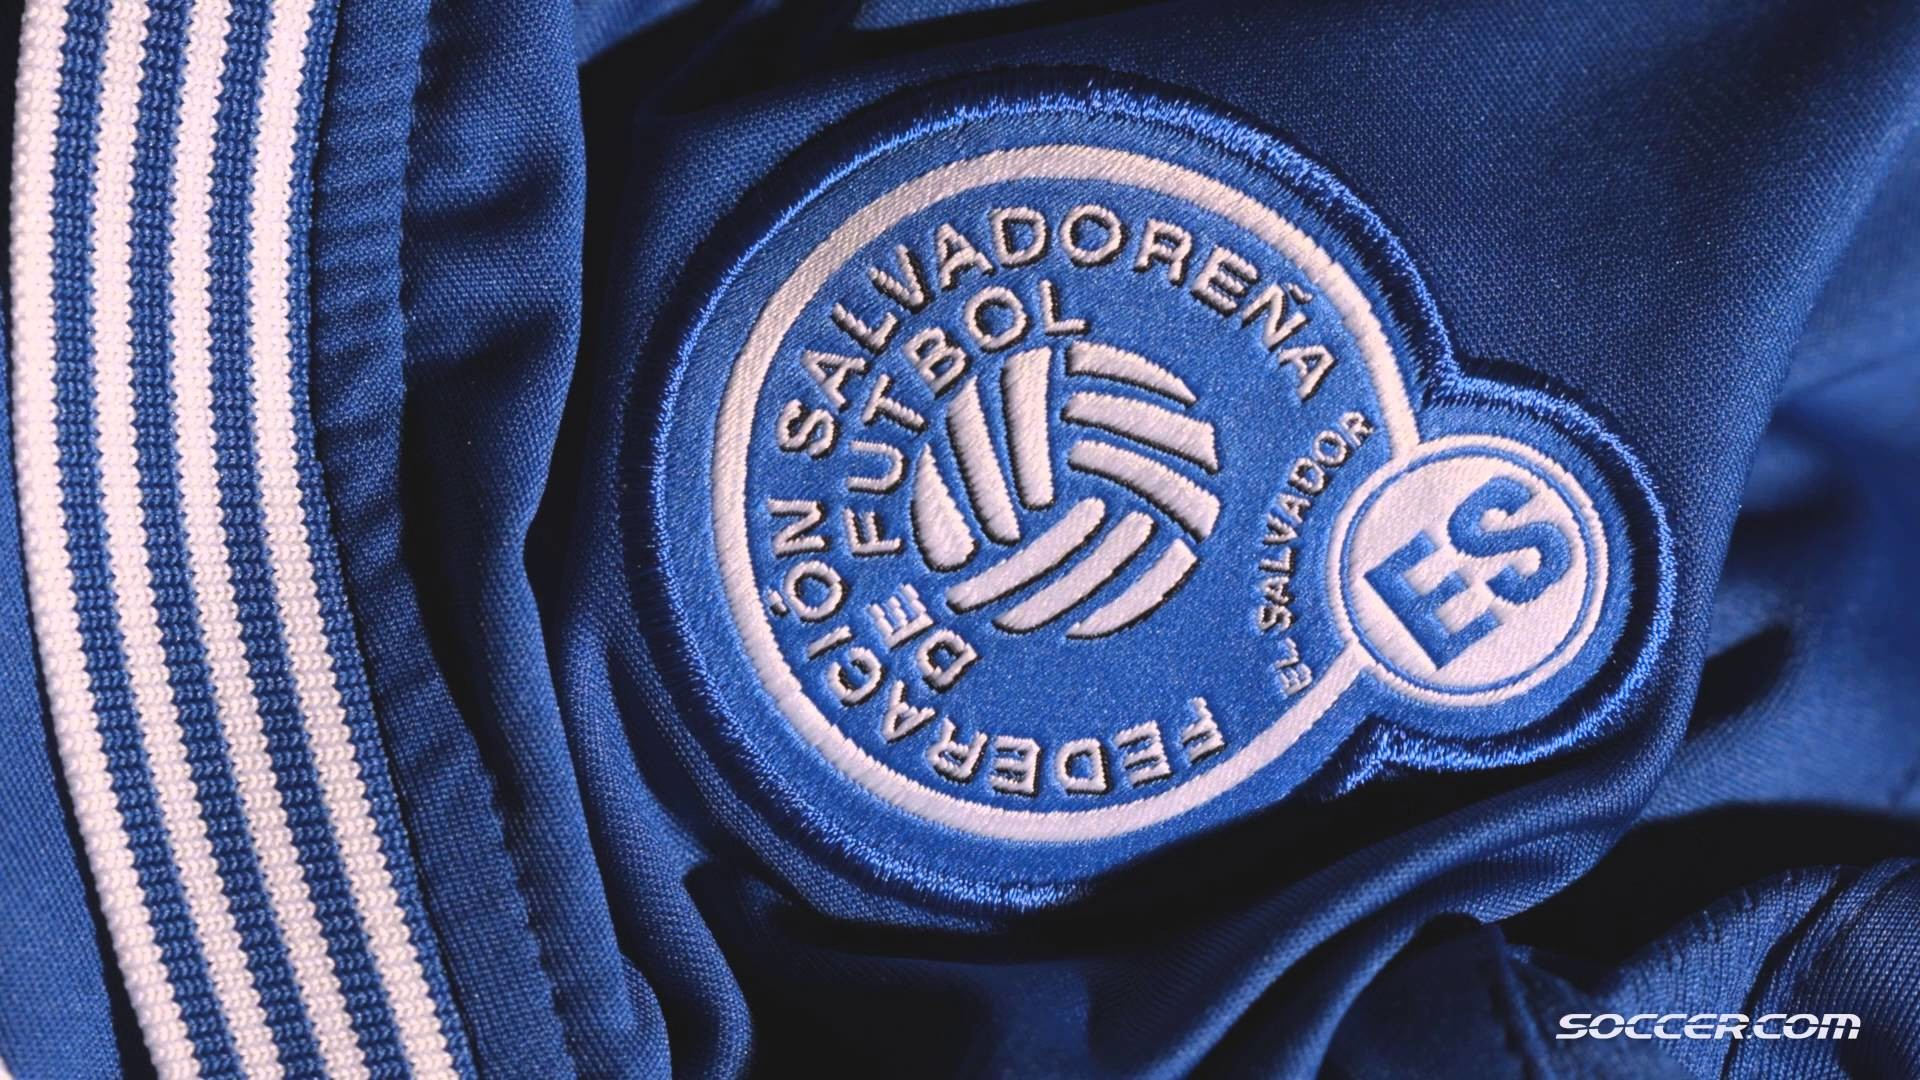 1920x1080 ... super pool el salvador | HD Windows Wallpapers ...